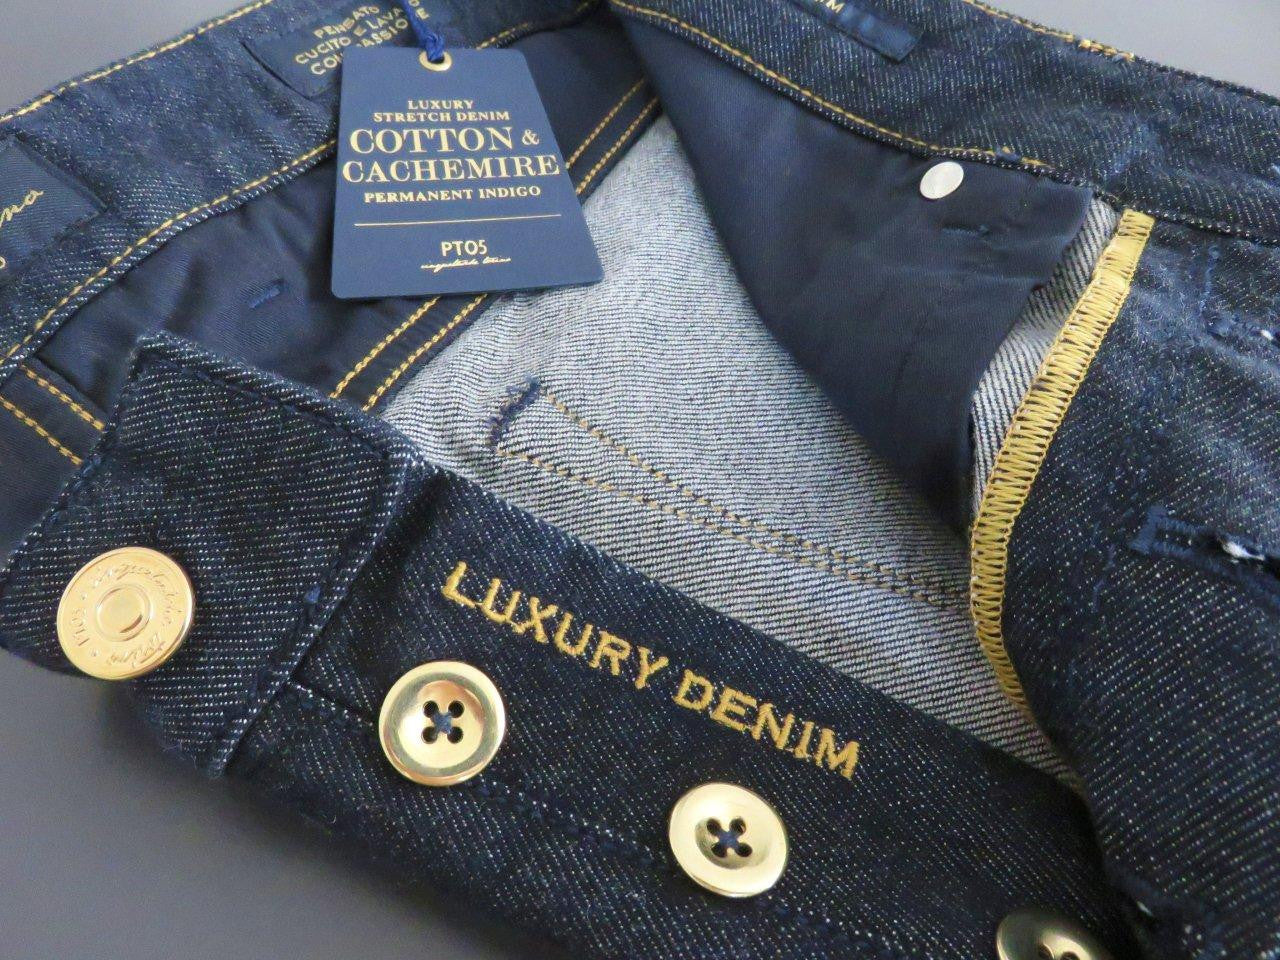 PT01 Pantaloni Torino - PT05 - Luxury Cashmere Stretch bluejeans